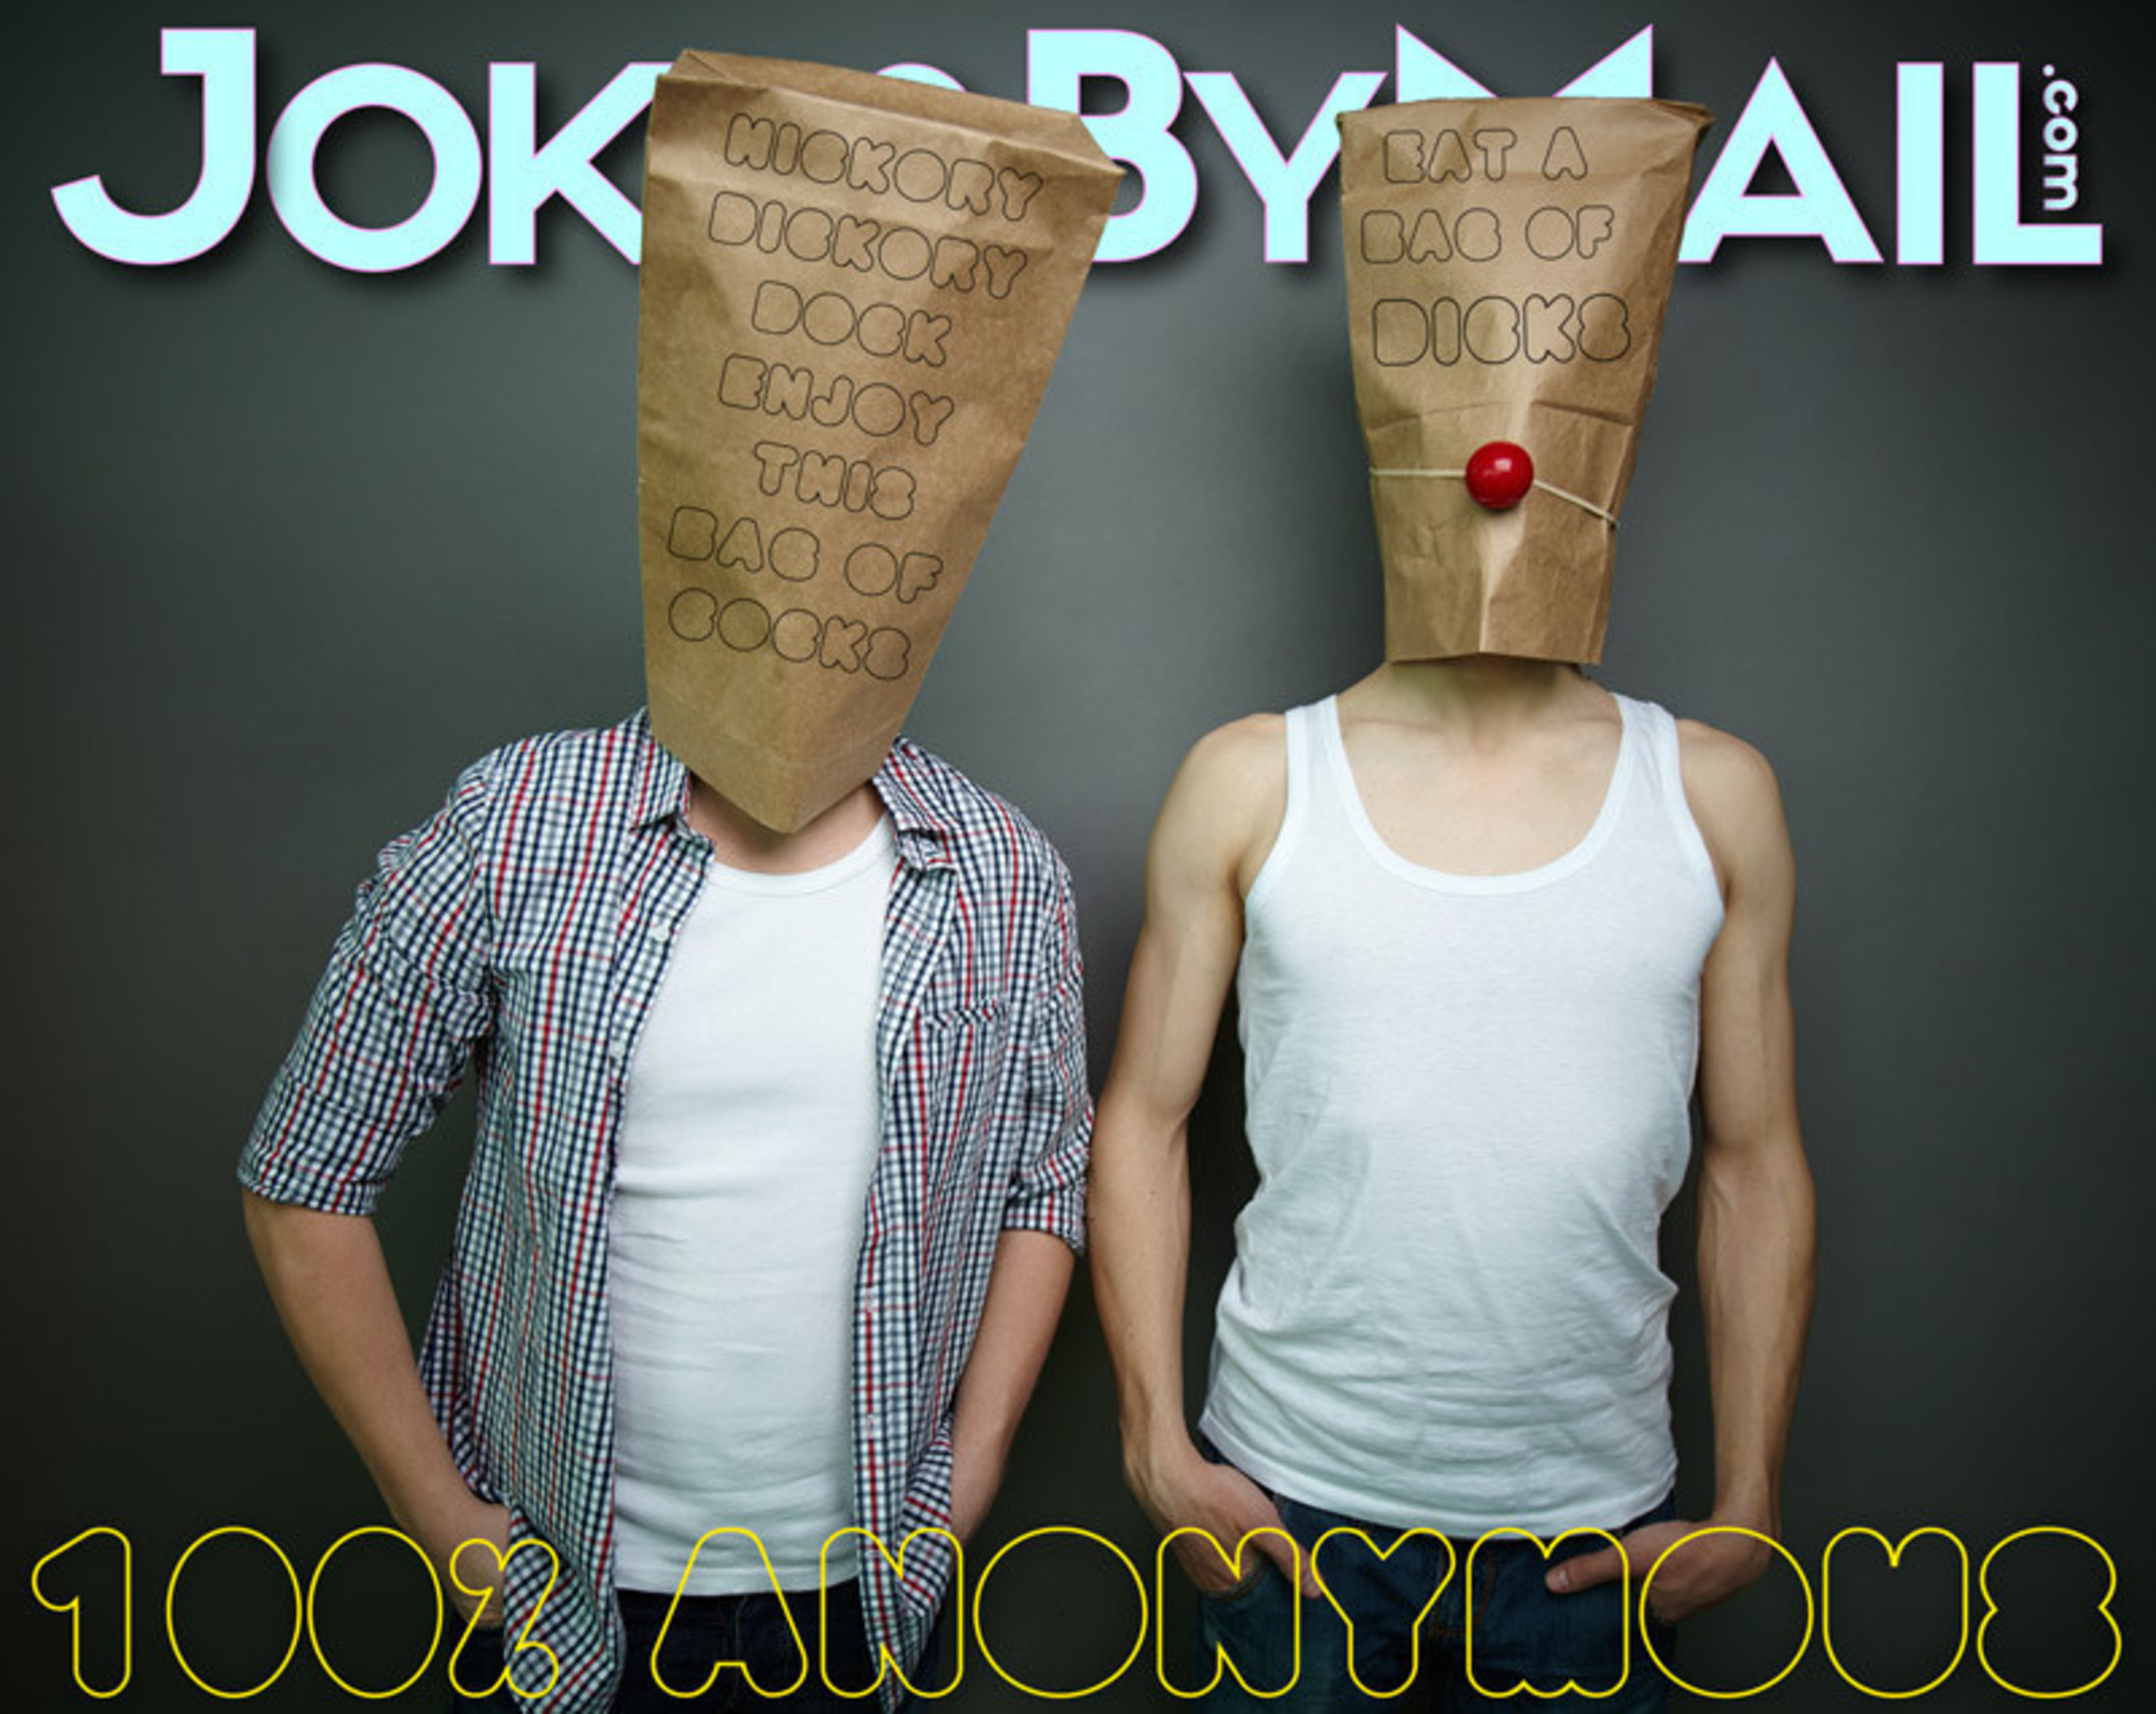 JokesByMail Launches New Prankster Site to Keep People Laughing